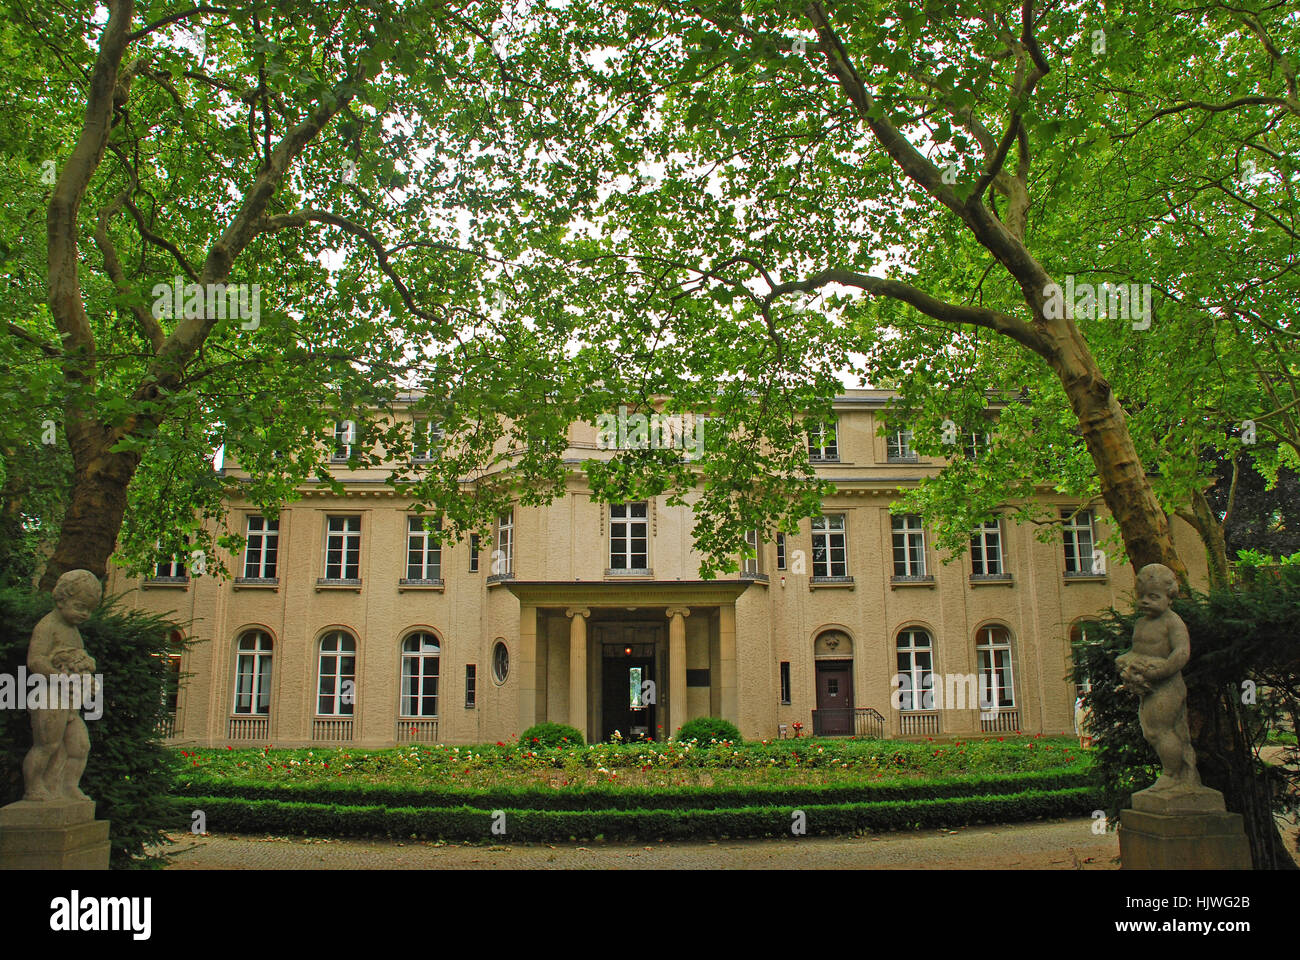 Stock photo villa of the wannsee conference 56 58 am grossen wannsee berlin germany